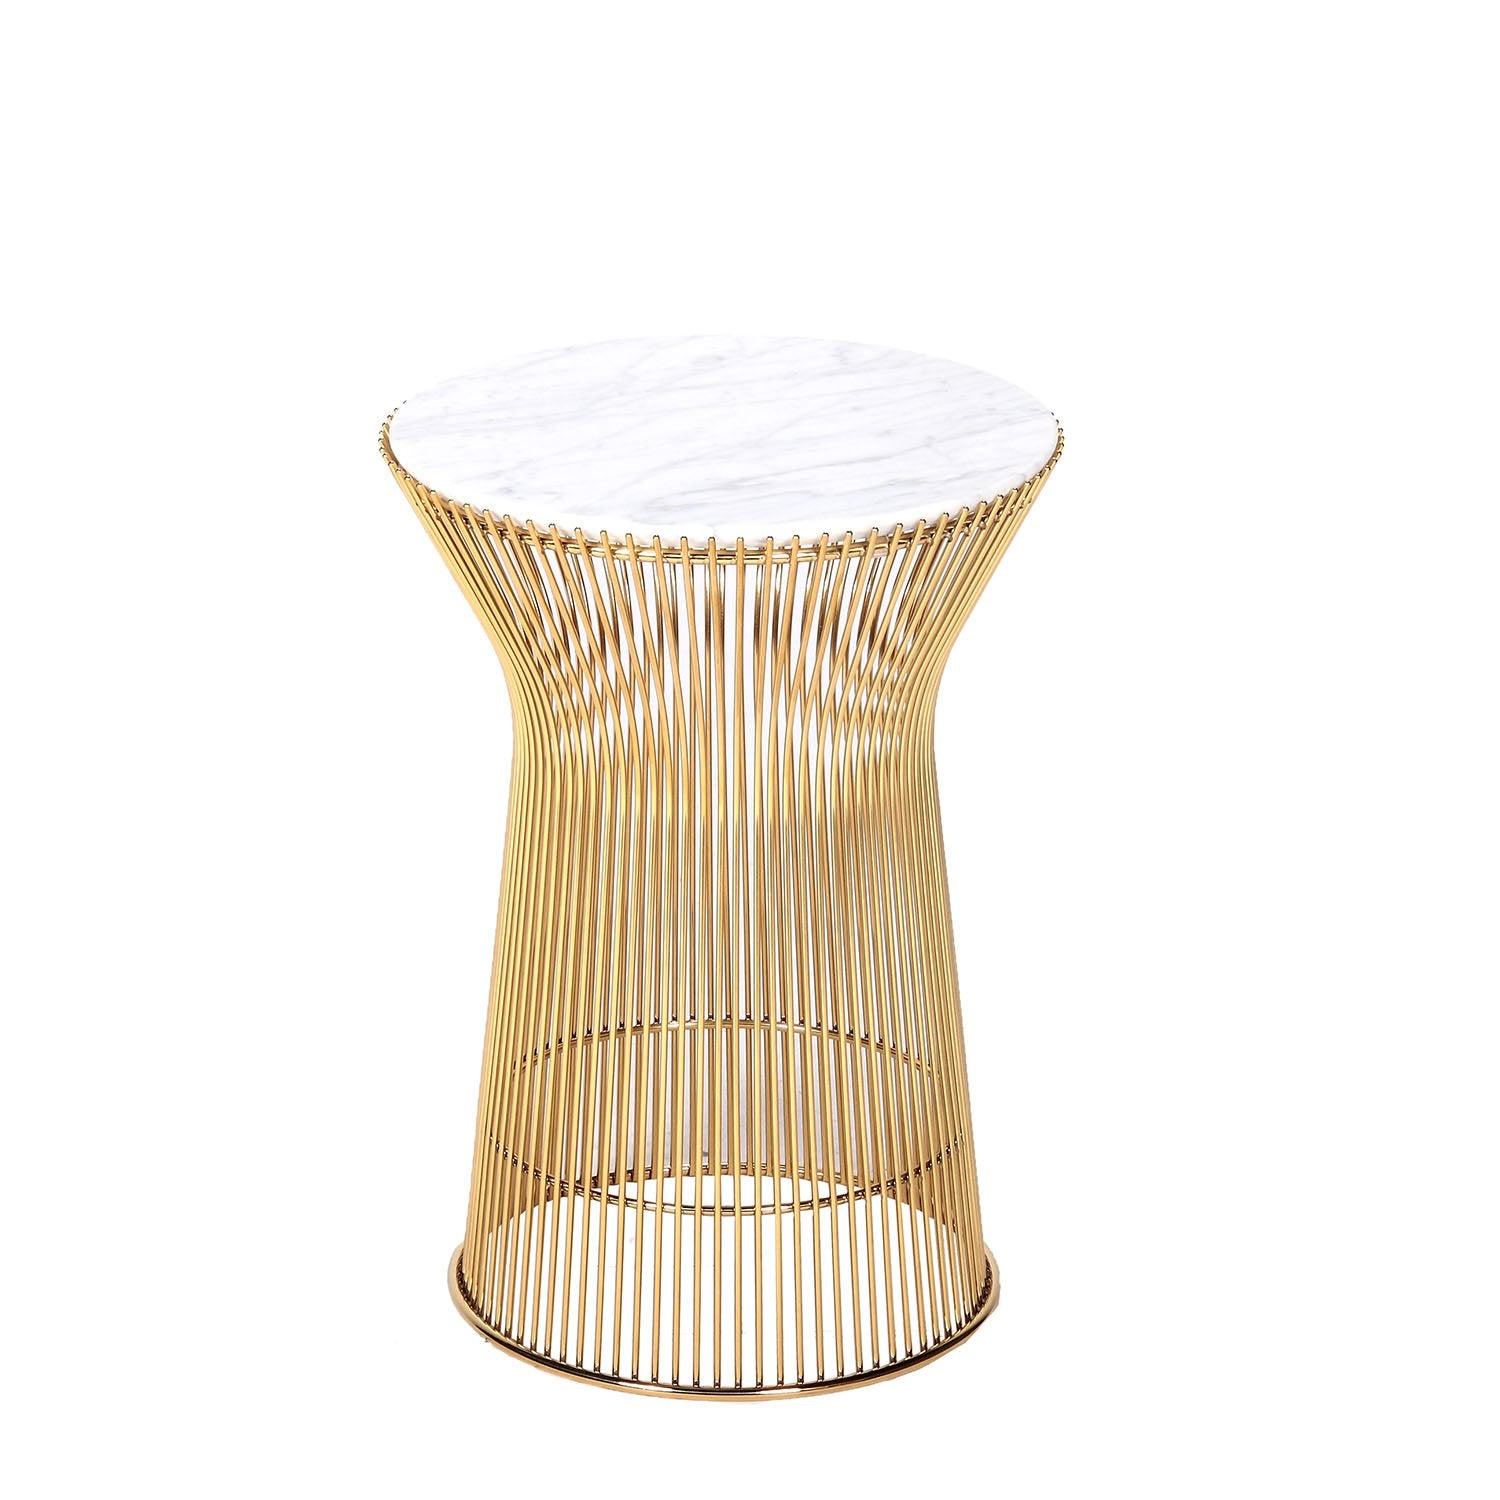 [FB919TMWHTGLD] The Fishburne Side Table with White Carrera style Marble Top